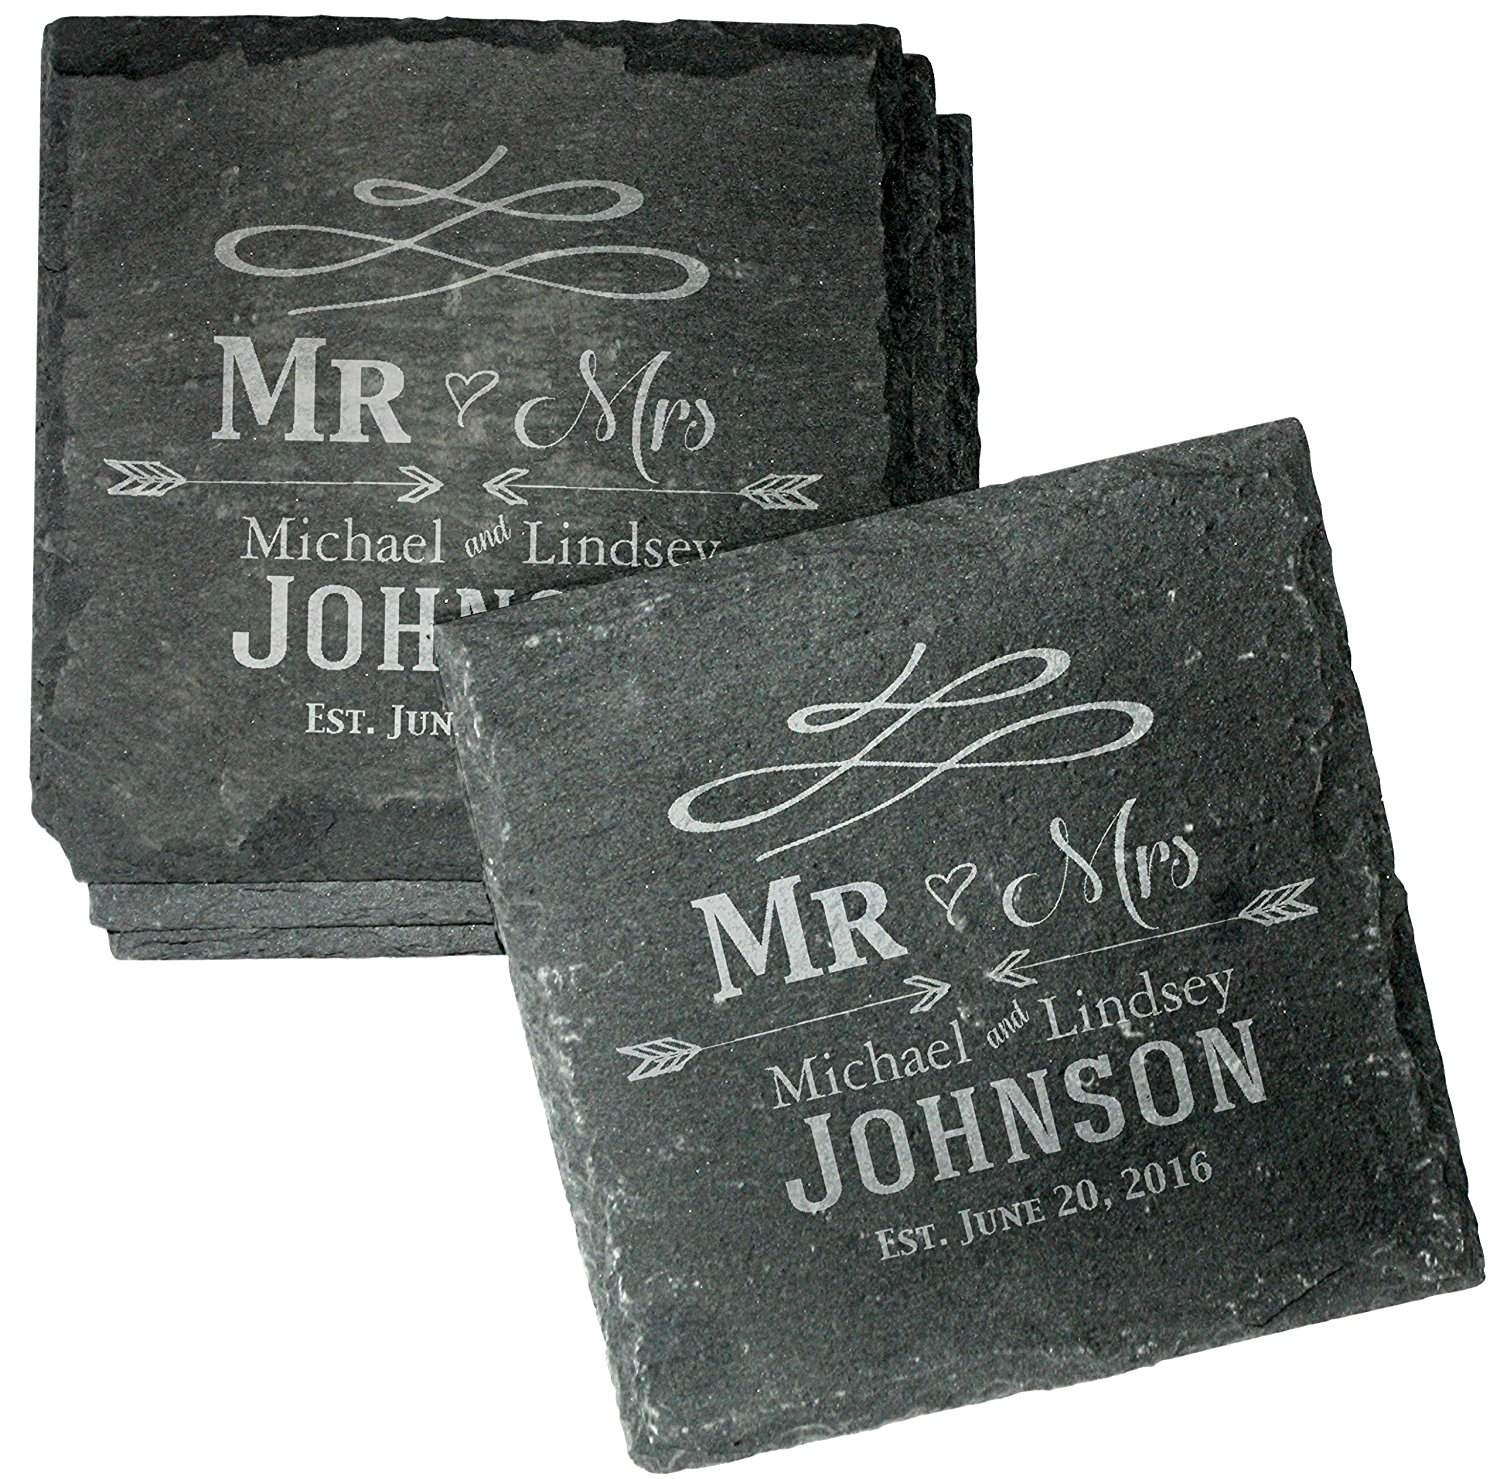 Best ideas about Wedding Gift Engraving Ideas . Save or Pin Top 20 Best Personalized Wedding Gifts Now.